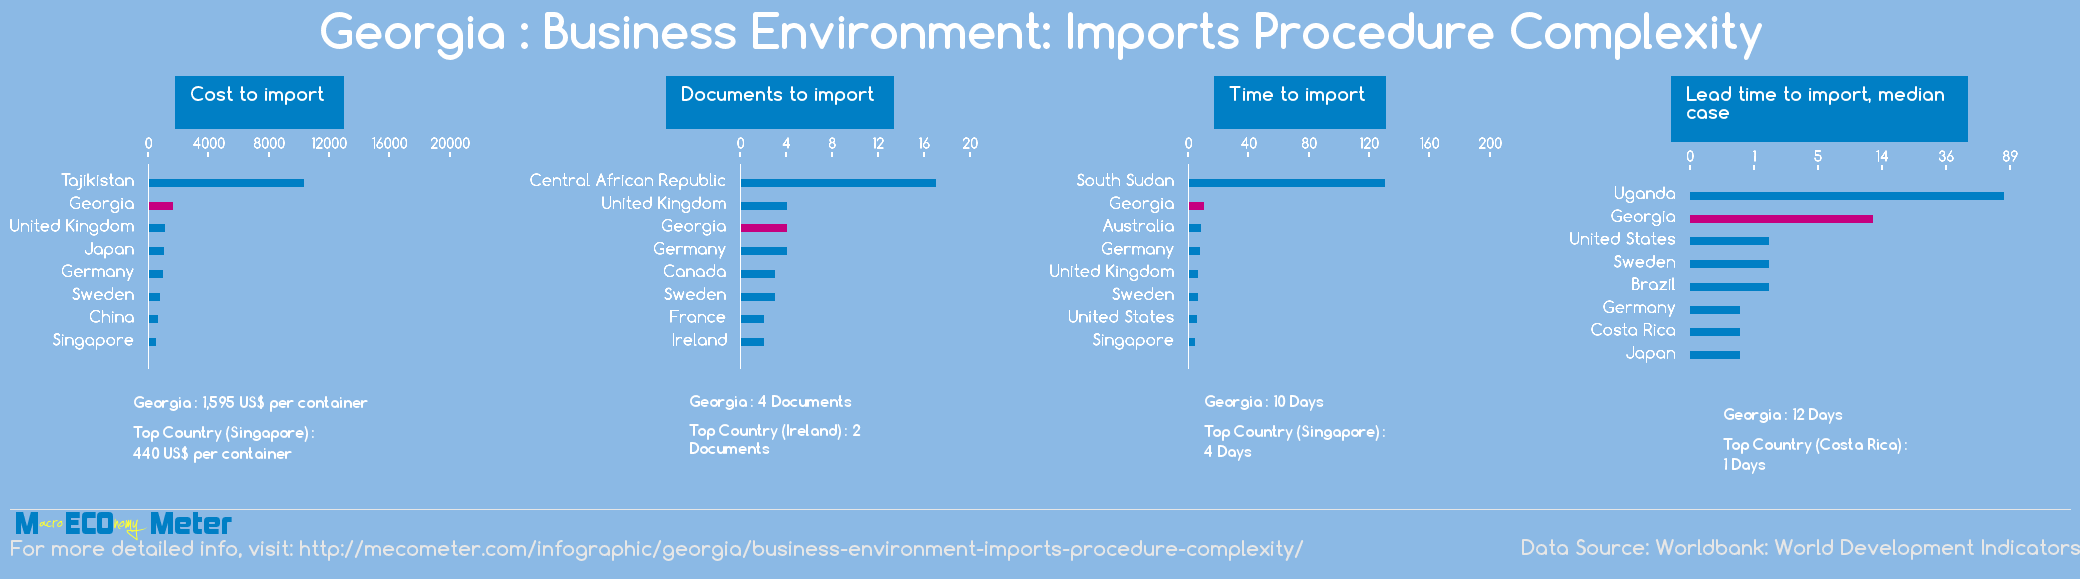 Georgia : Business Environment: Imports Procedure Complexity